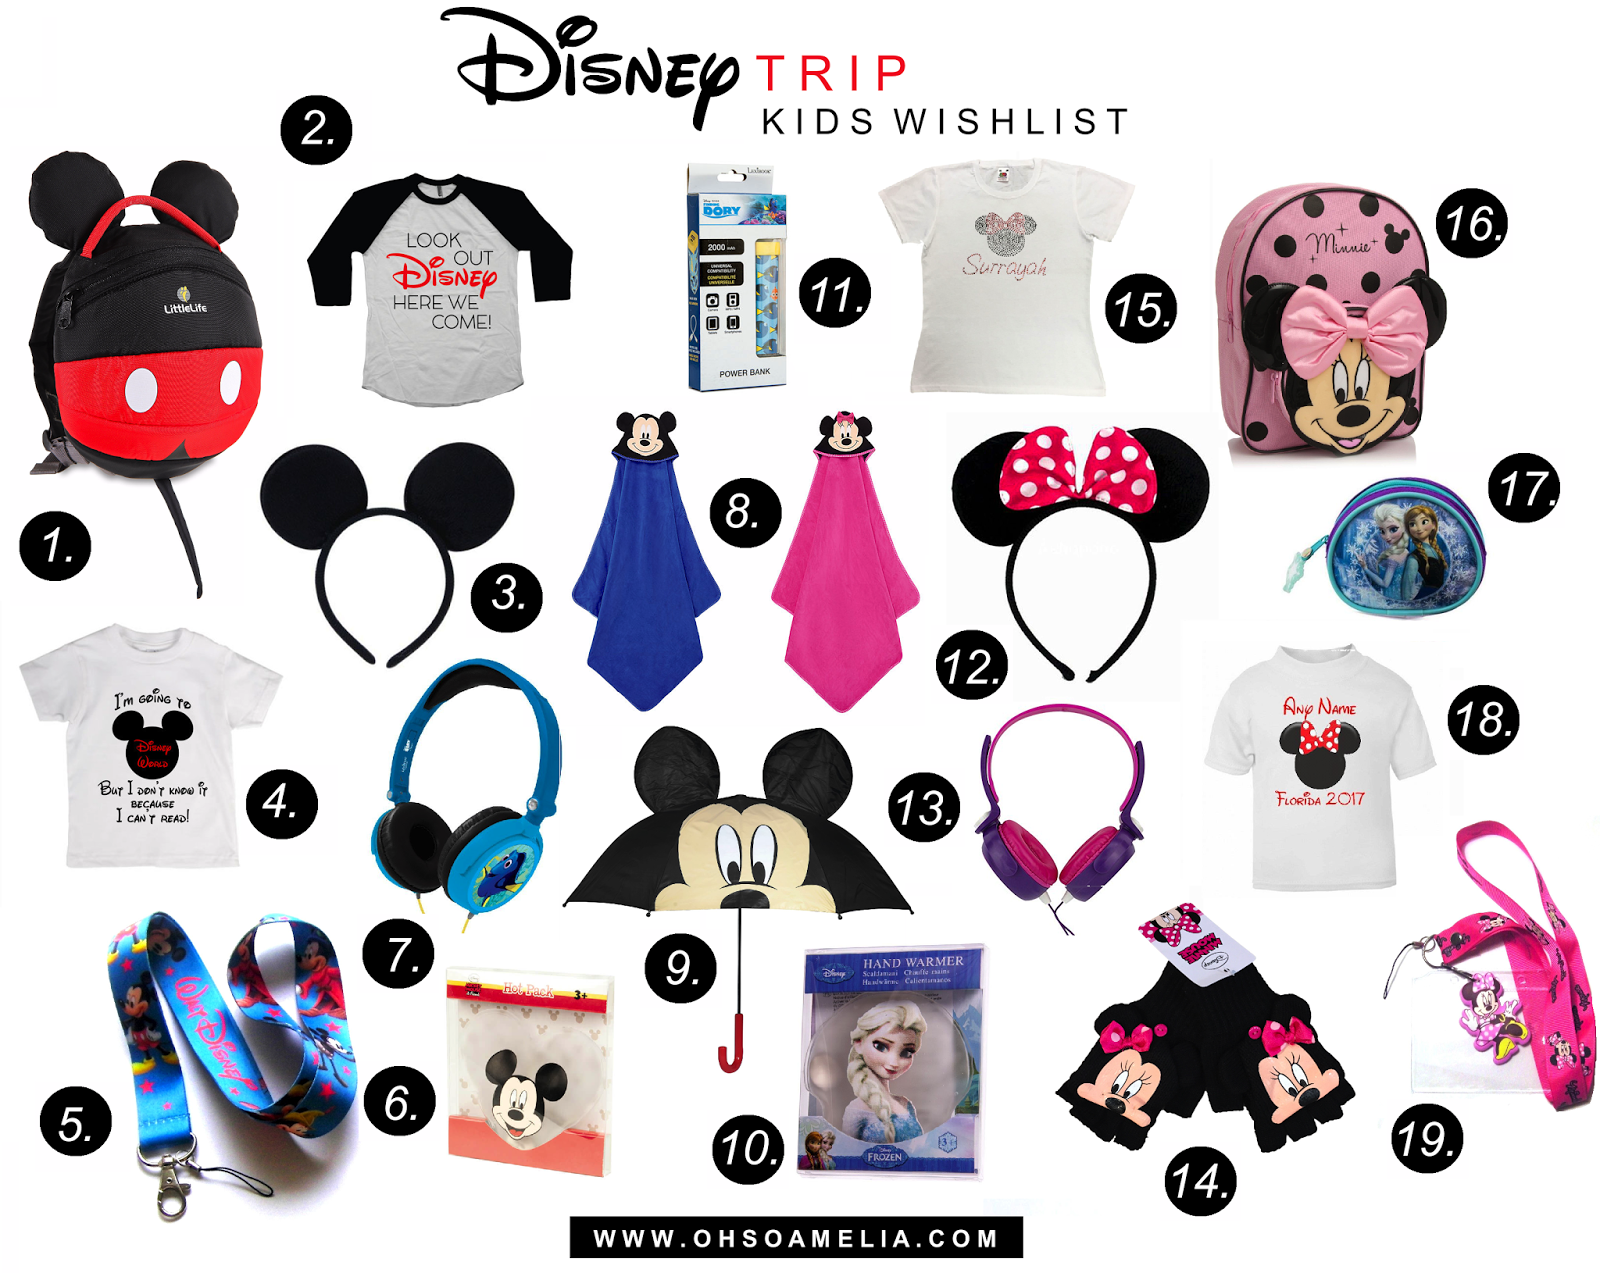 Essentials and favourites for travelling to Disney with kids